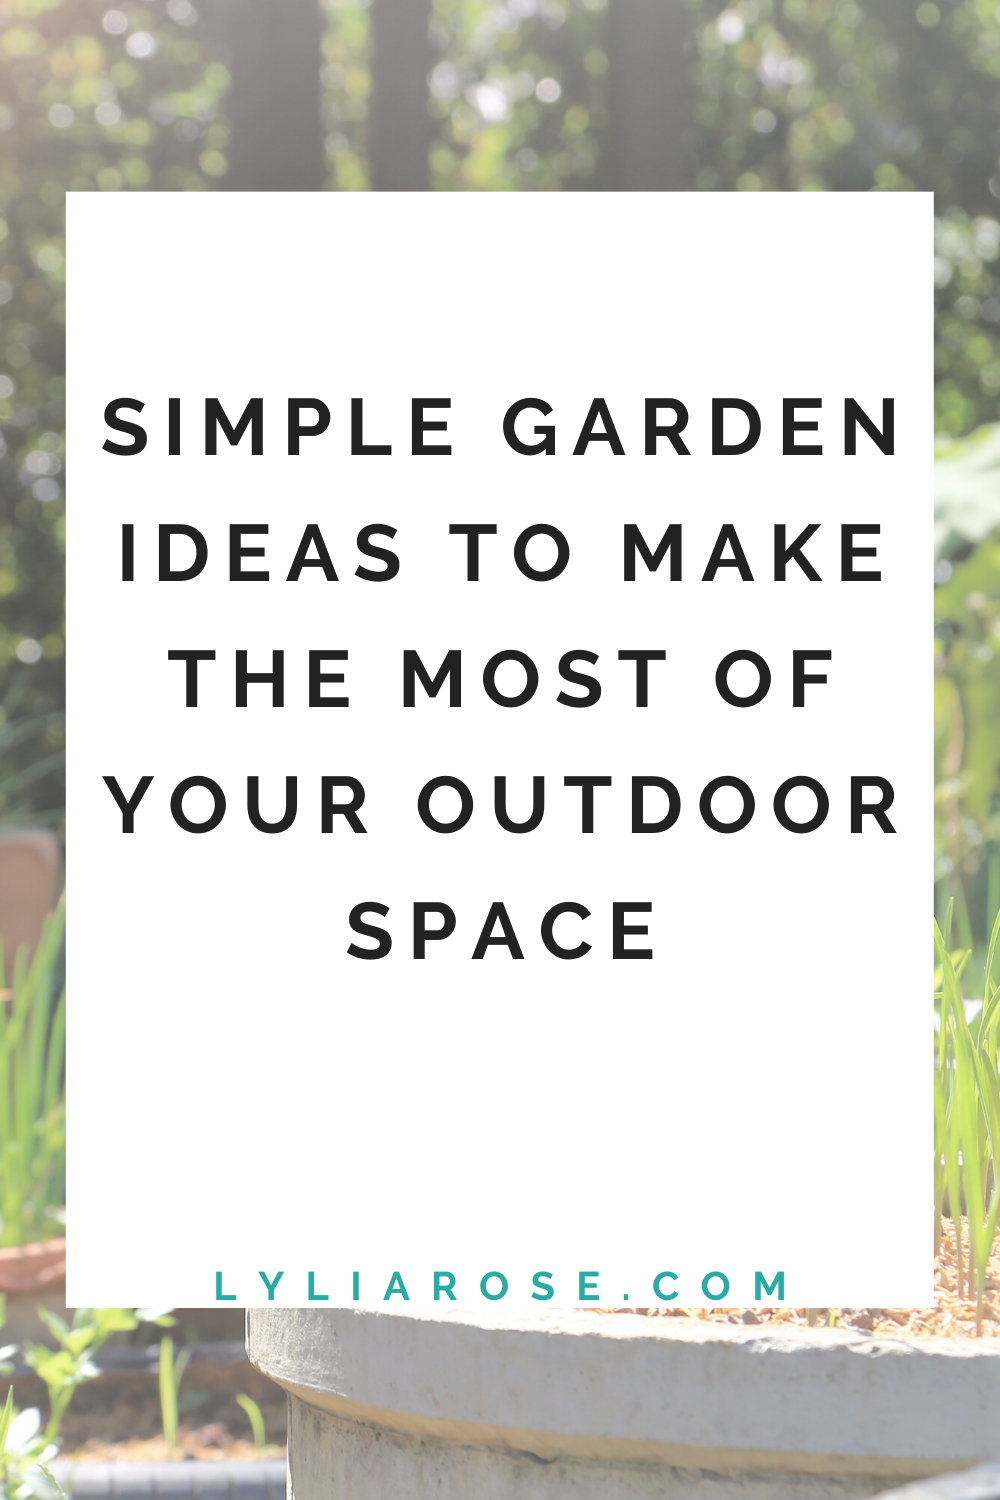 Simple garden ideas to make the most of your outdoor space (1)